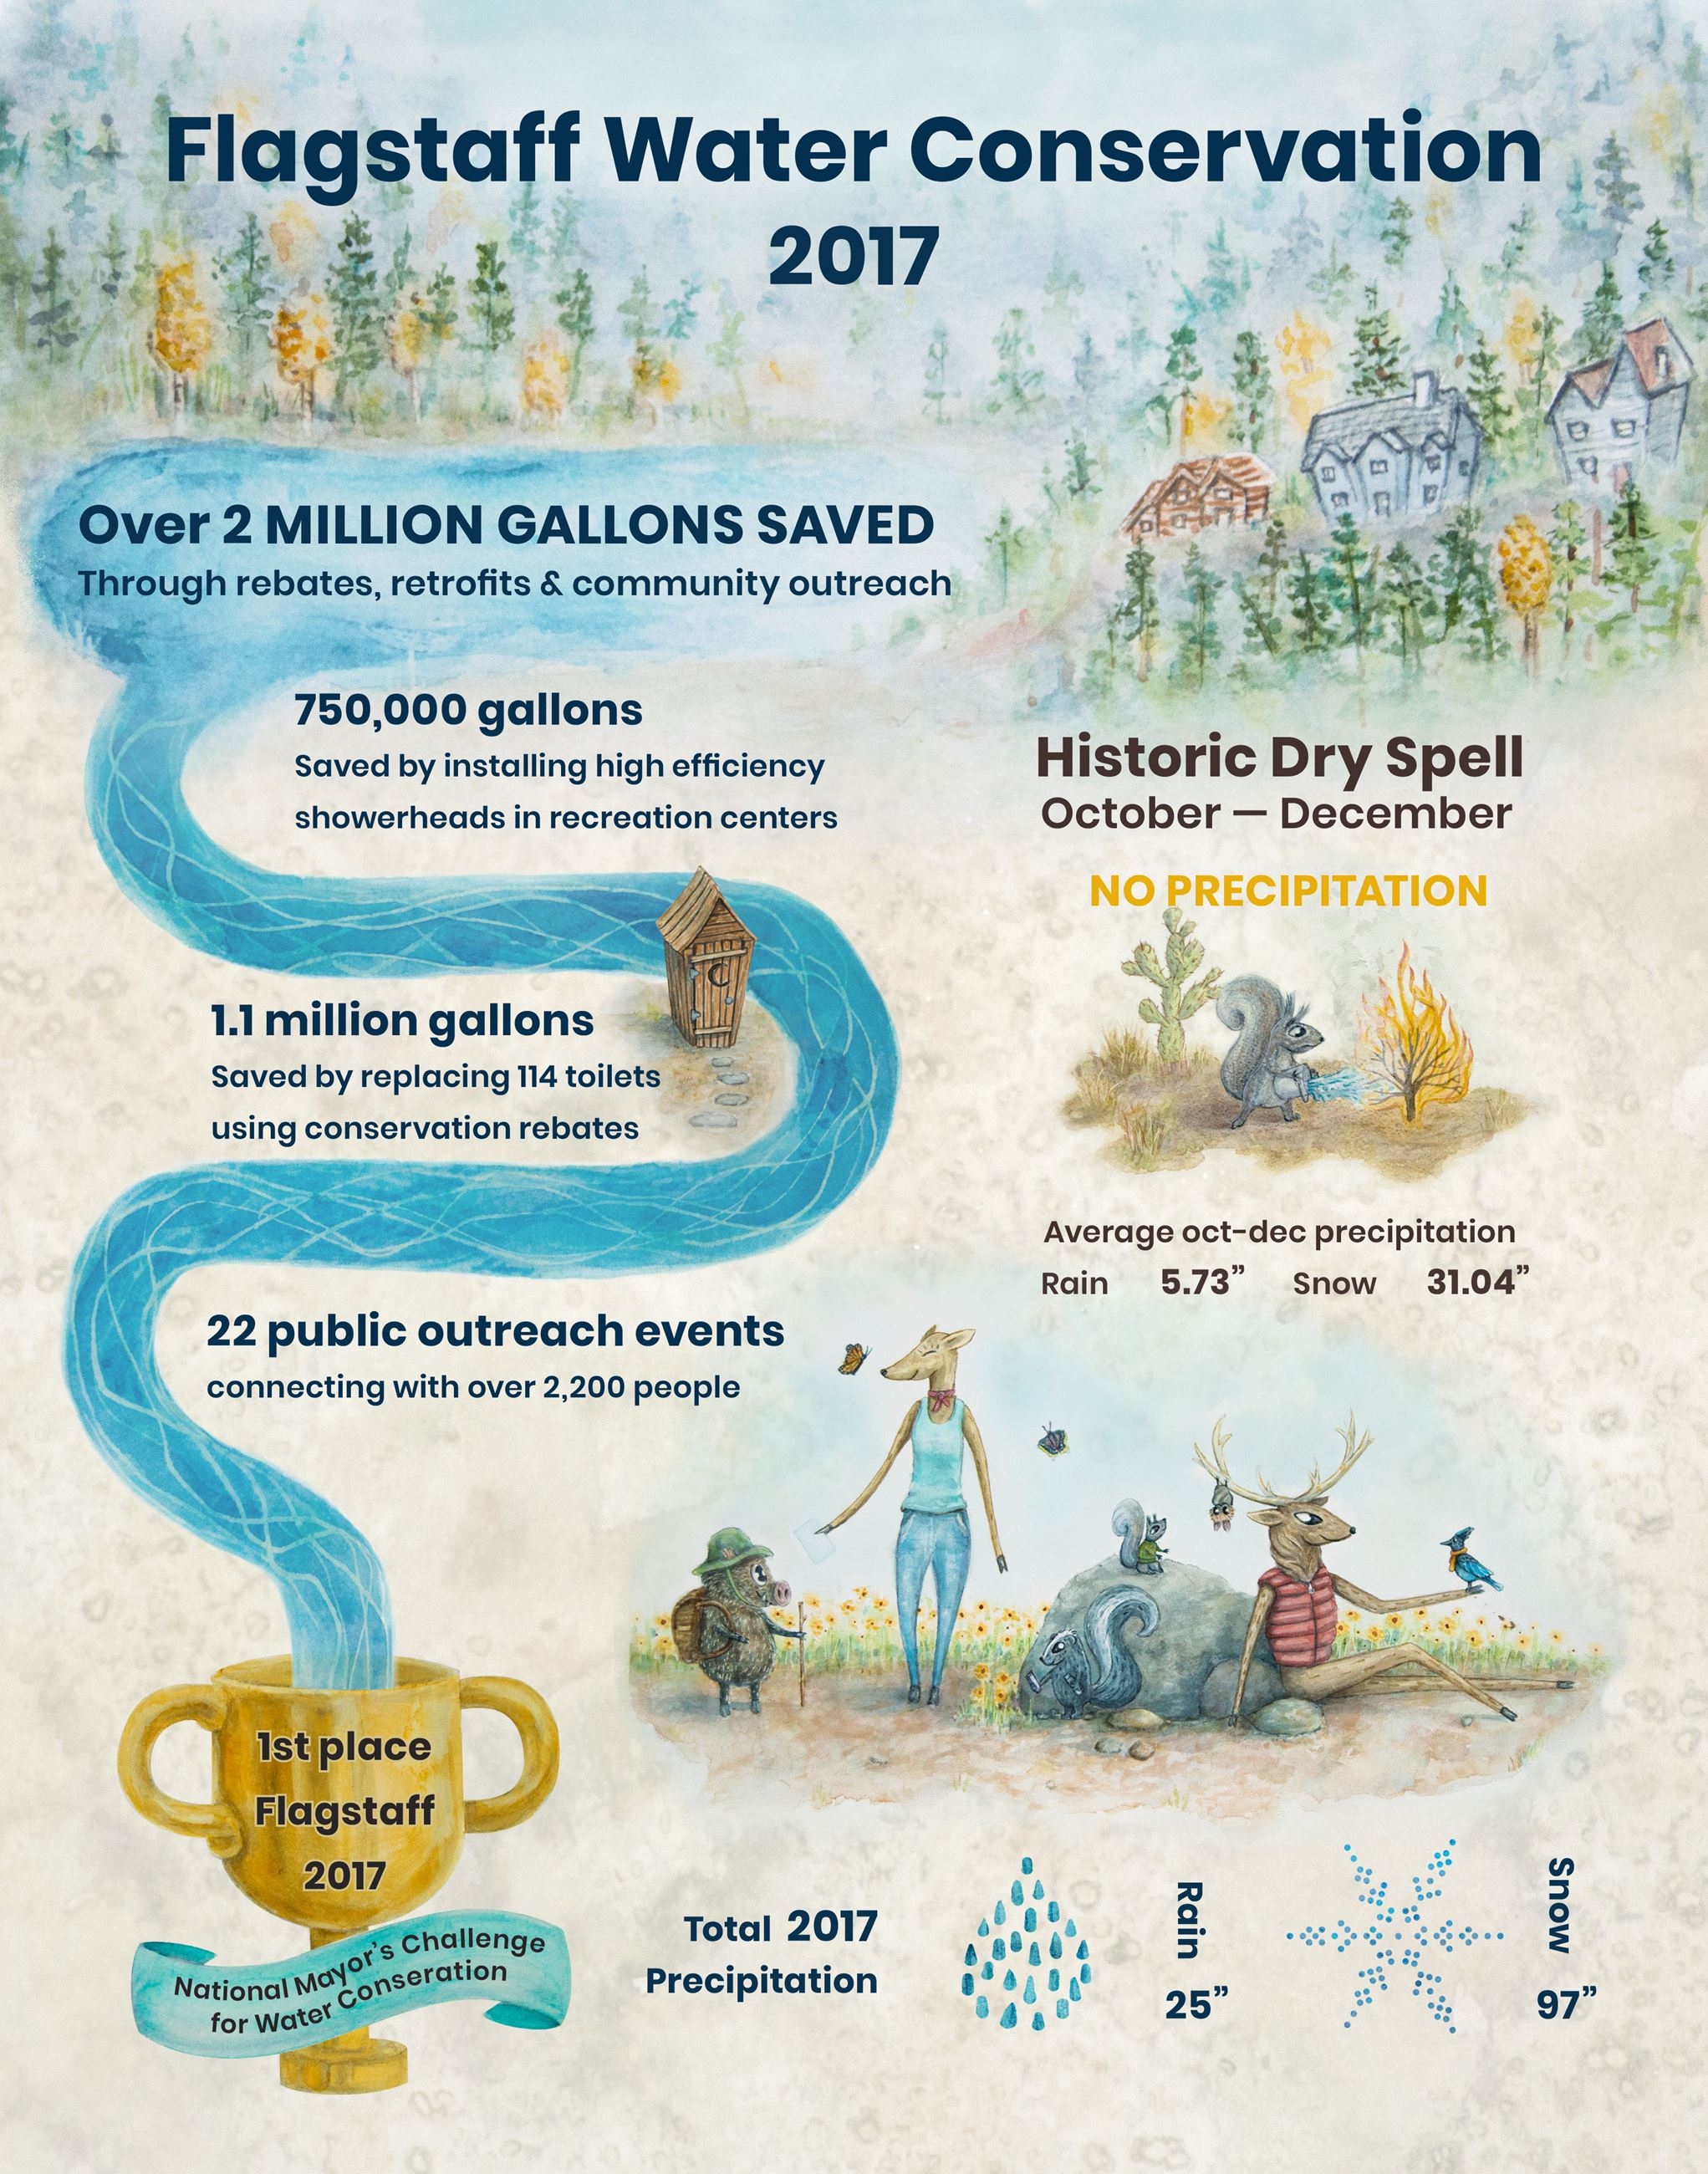 Flagstaff Water Conservation Poster 2017_animals